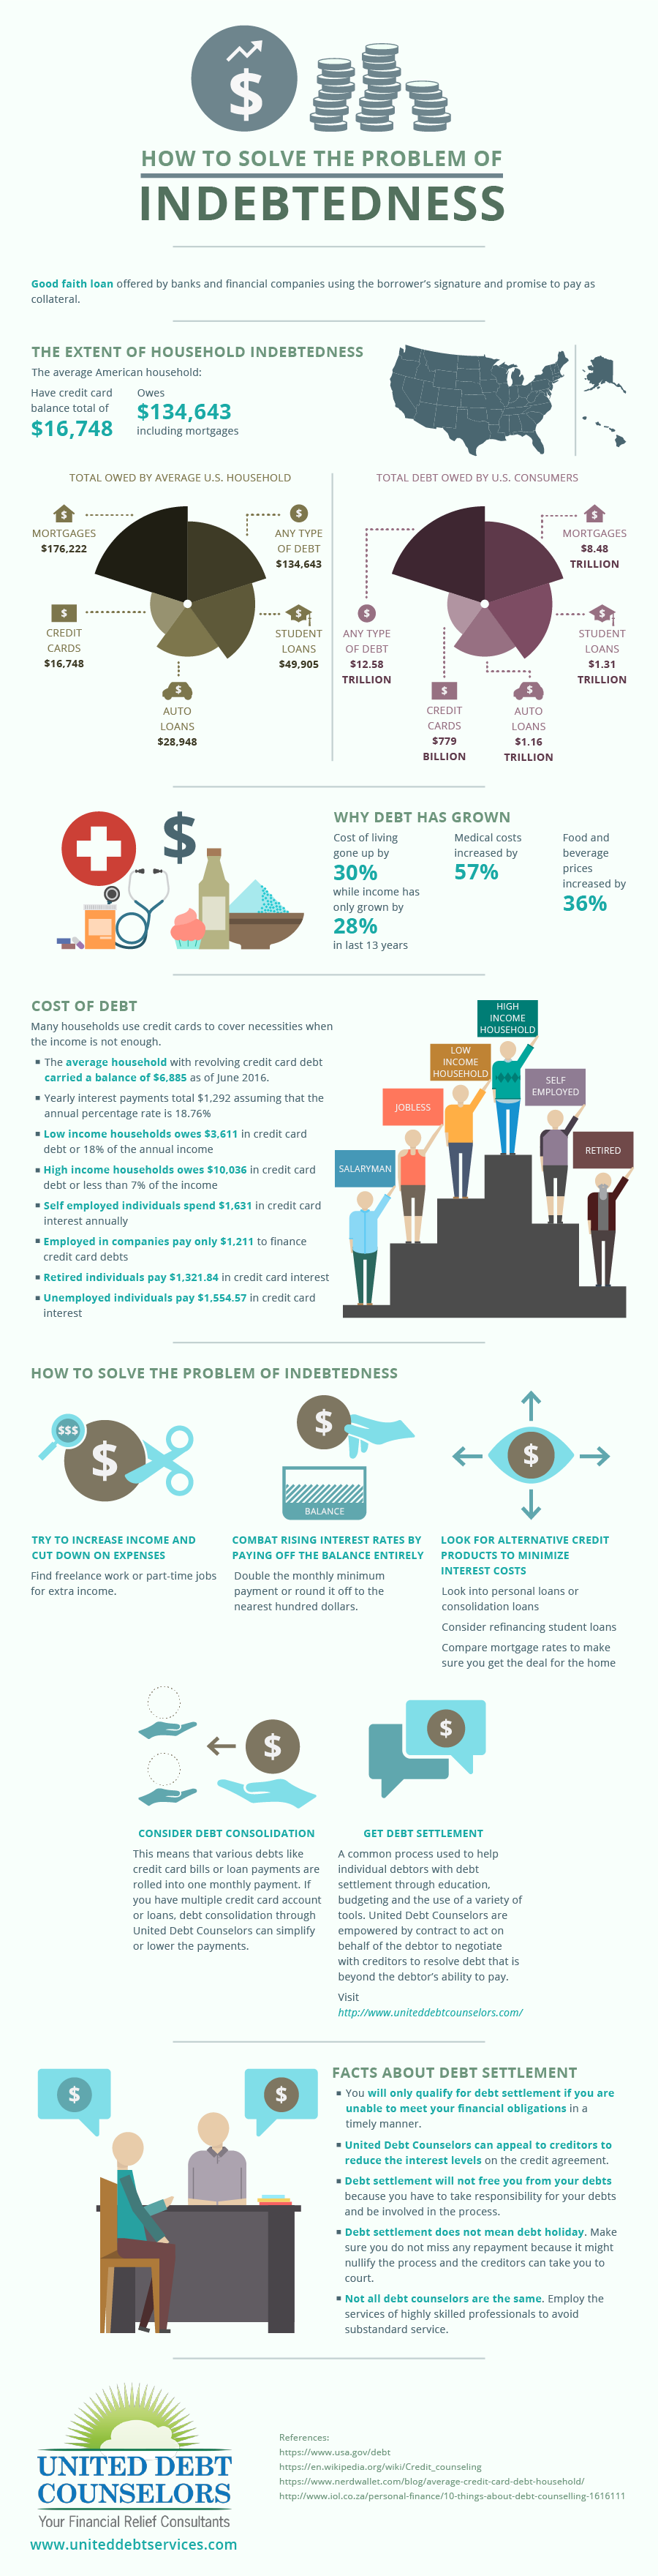 United Debt Counselor Infographic - How To Solve The Problem Of Indebtedness 2